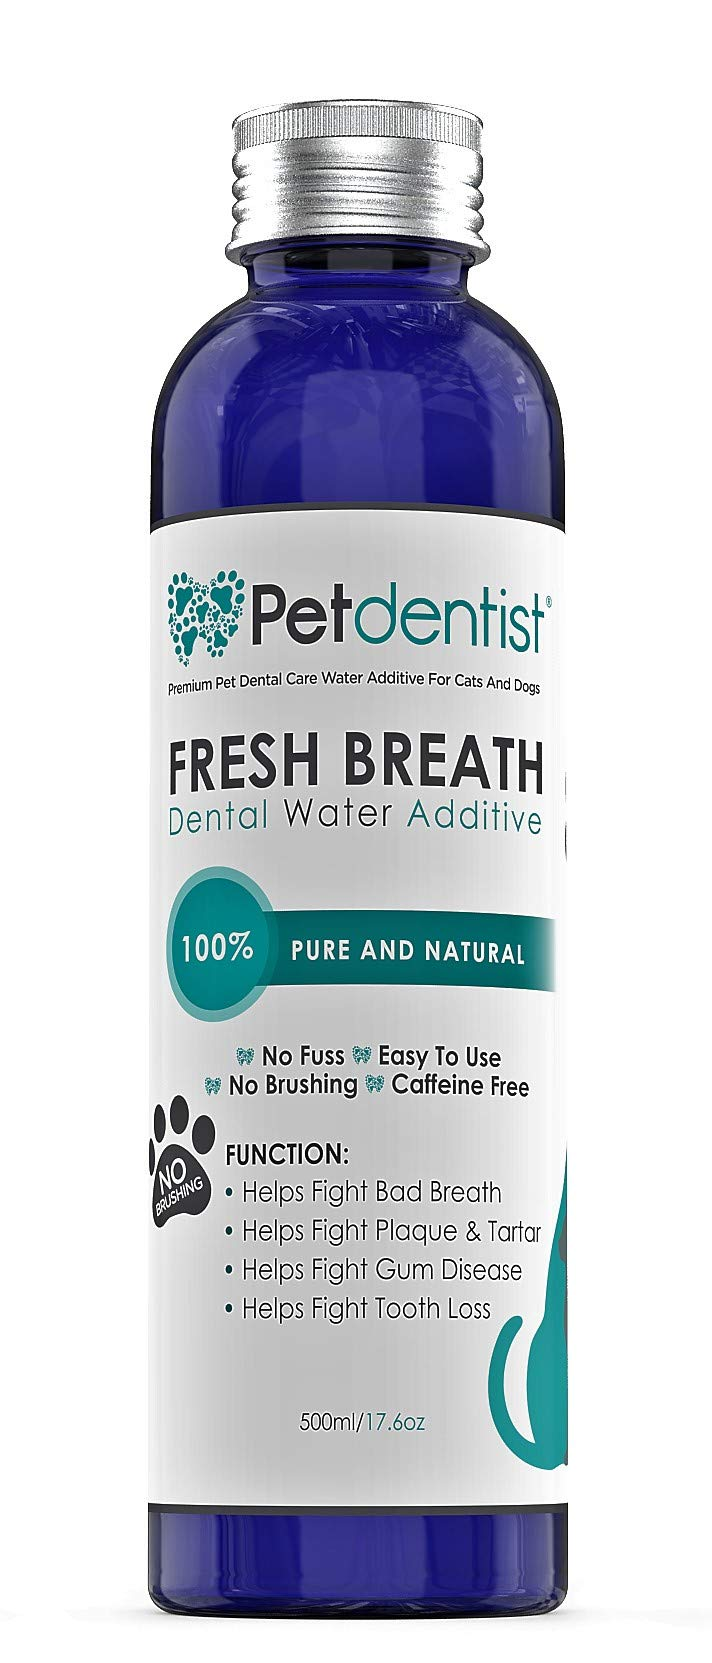 Petdentist Dog Dental Care Fresh Breath Water Additive Plaque Tartar Remover for Dogs Easy Teeth Cleaning Oral Hygiene Freshener Product for Gums Gingivitis Periodontitis and Bad Cat Dog Breath-500ml